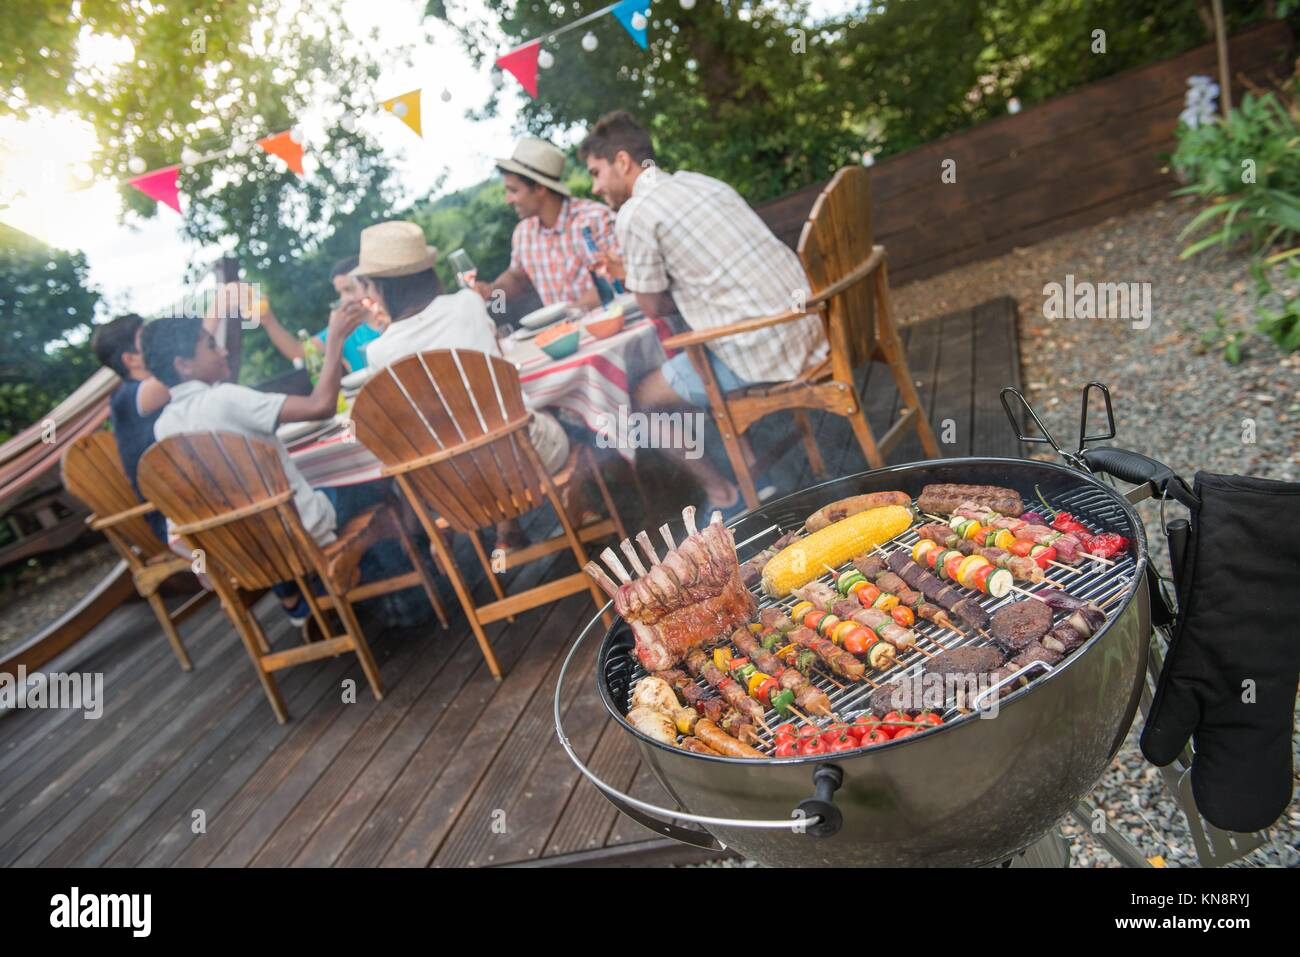 summer garden party grill barbecue stock photos summer garden party grill barbecue stock. Black Bedroom Furniture Sets. Home Design Ideas